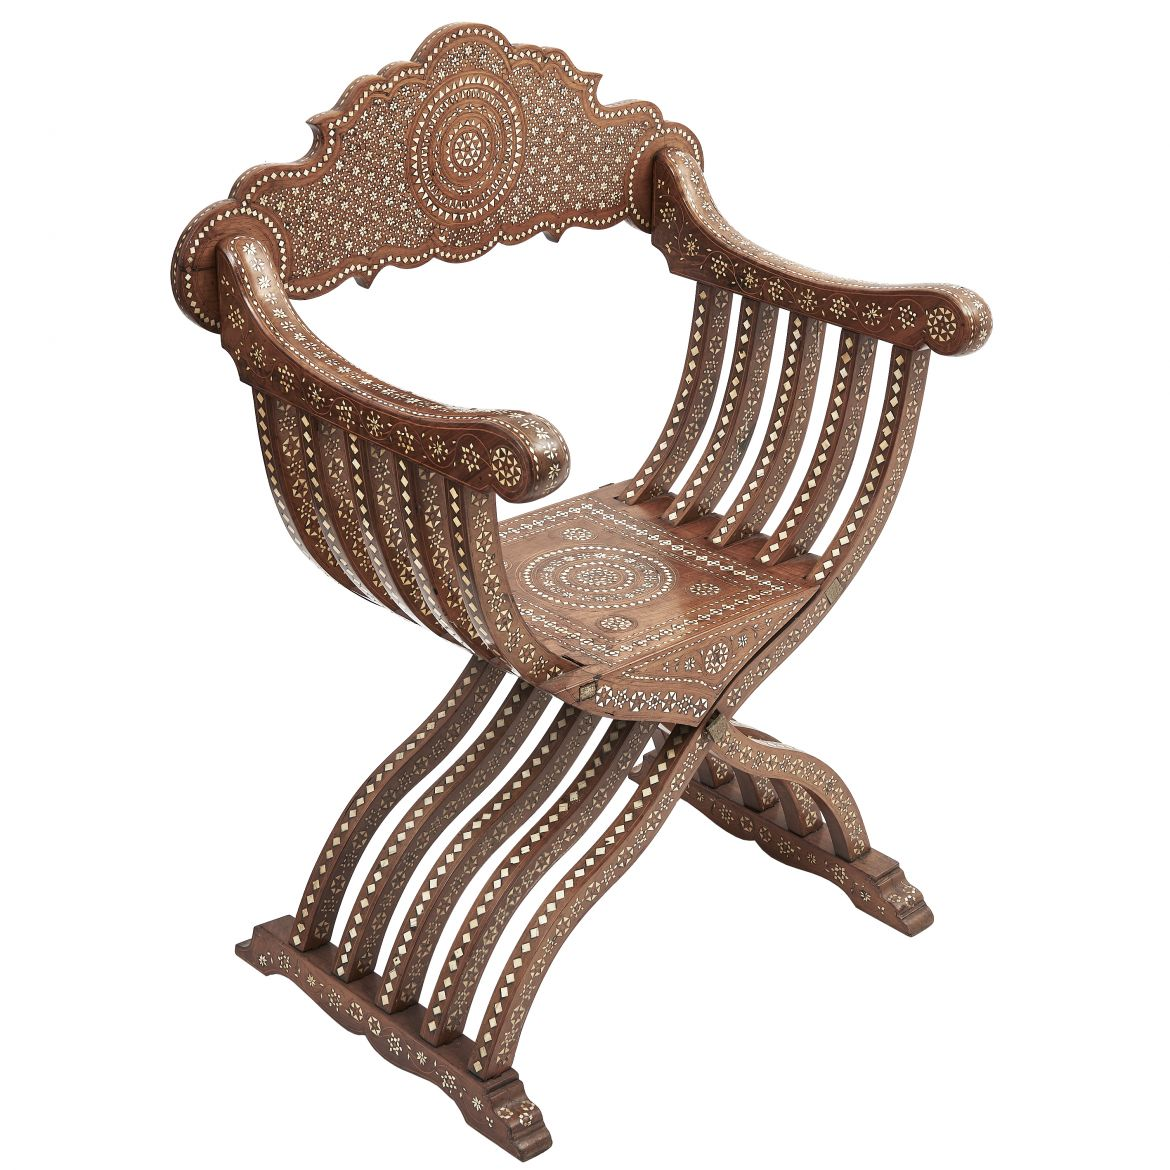 Italian Inlaid Walnut Chair